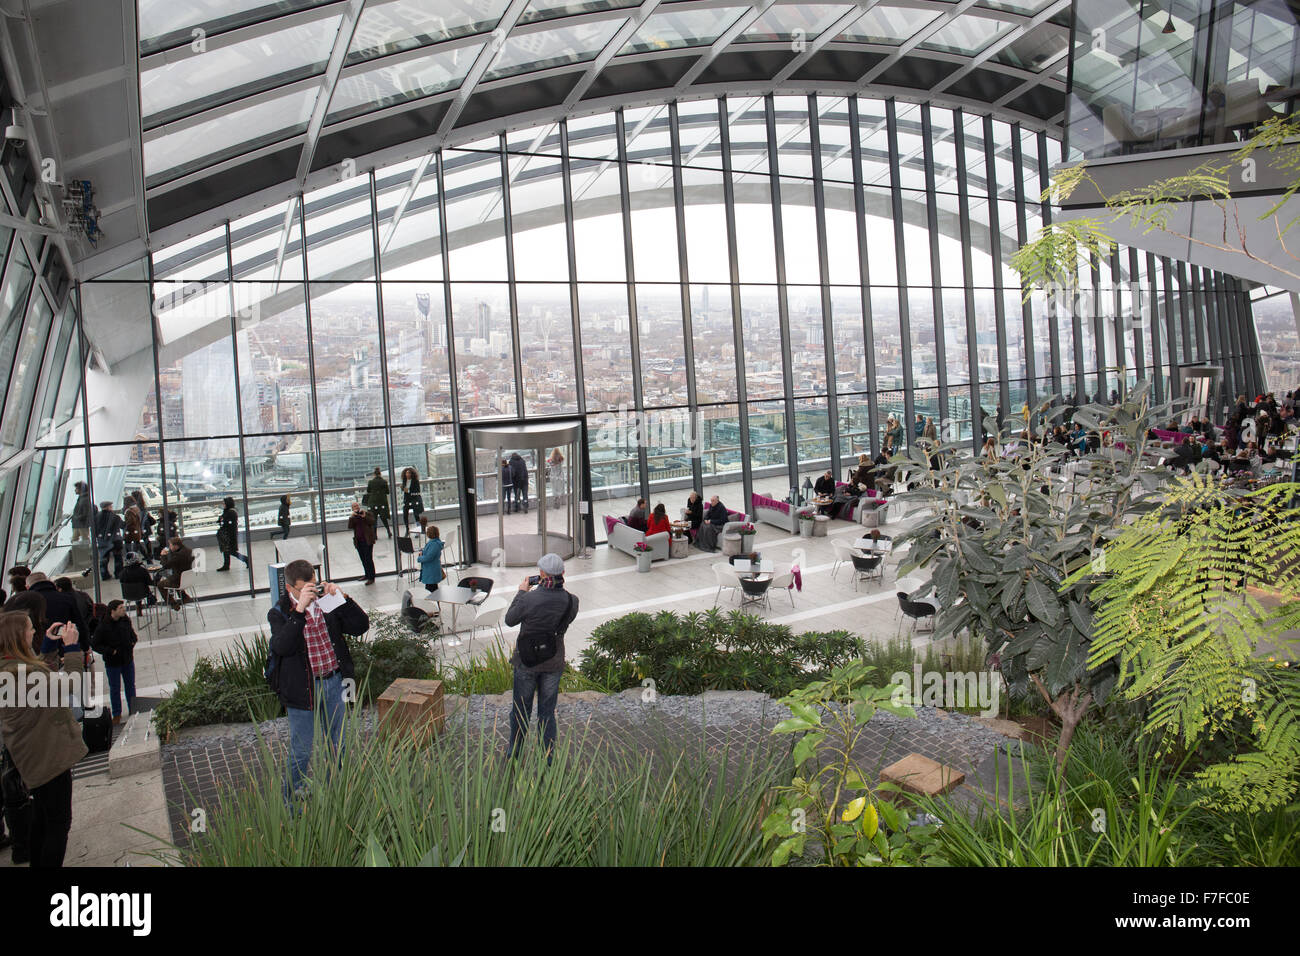 Inside the Skygarden at 20 Fenchurch Street London Stock